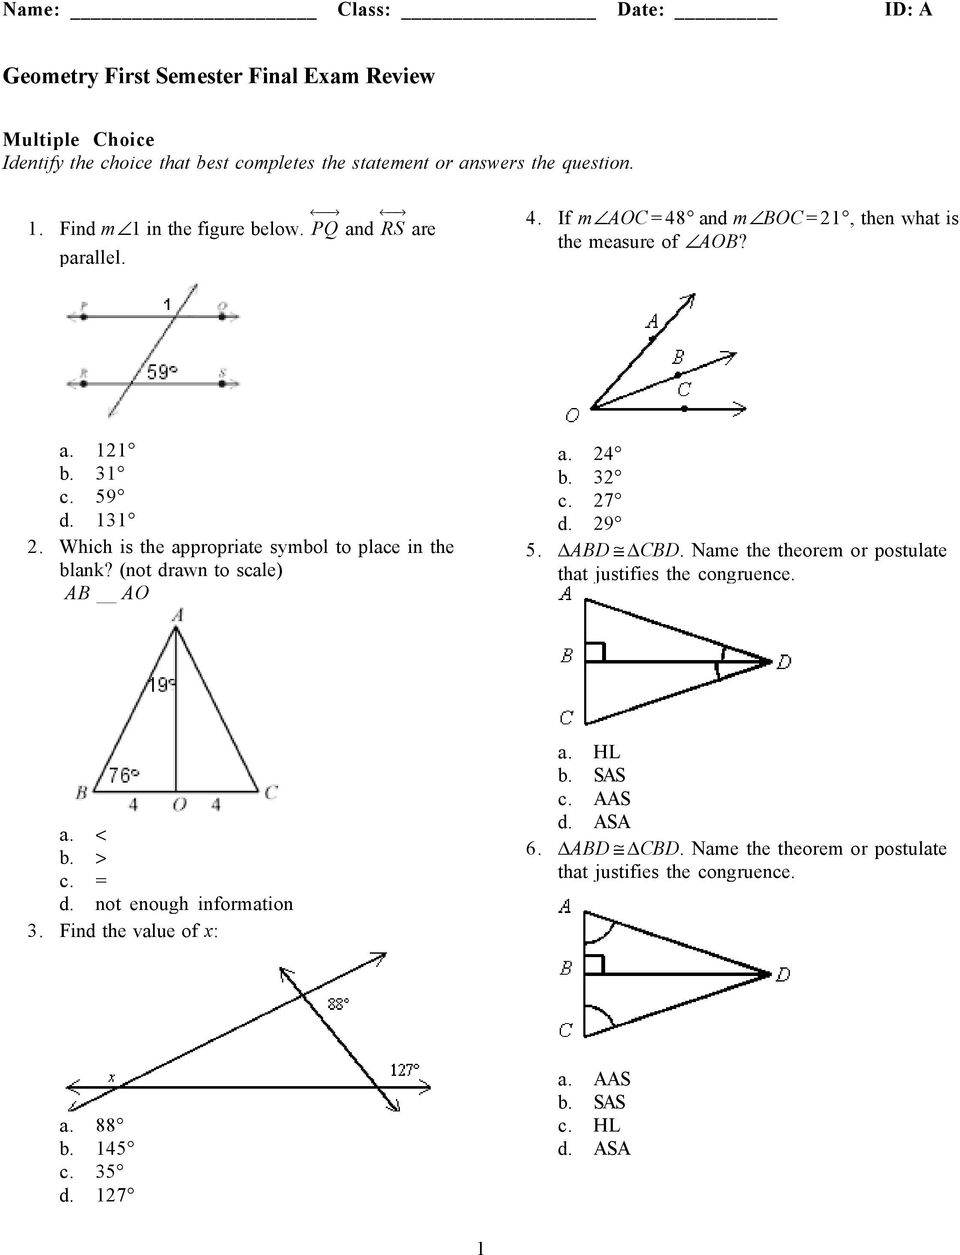 Geometry First Semester Final Exam Review - PDF